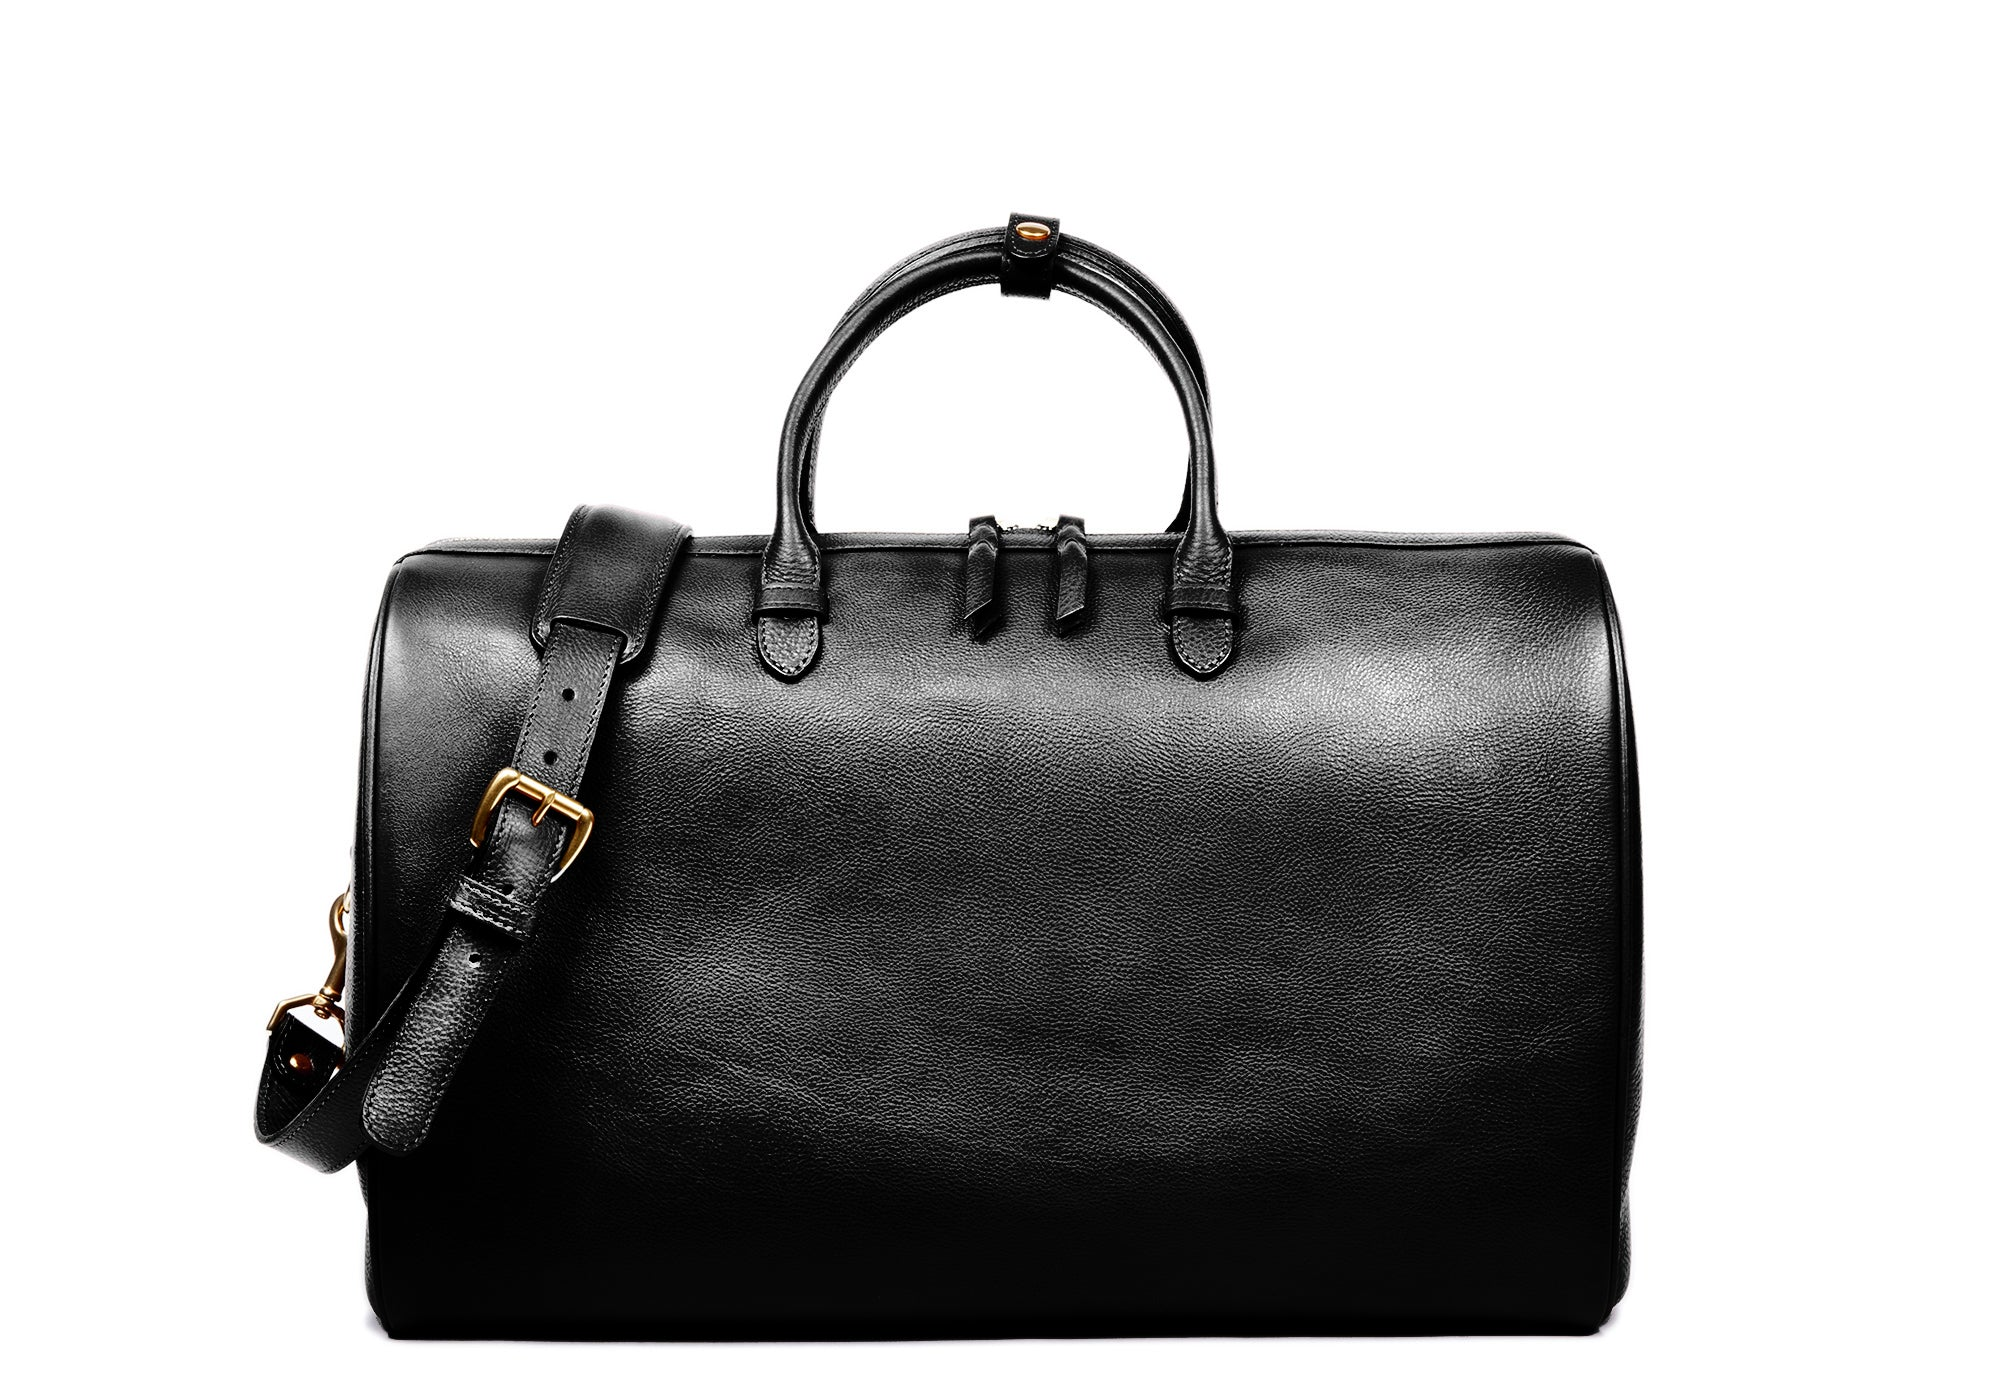 No. 10 Weekender Bag Black|Front Leather View